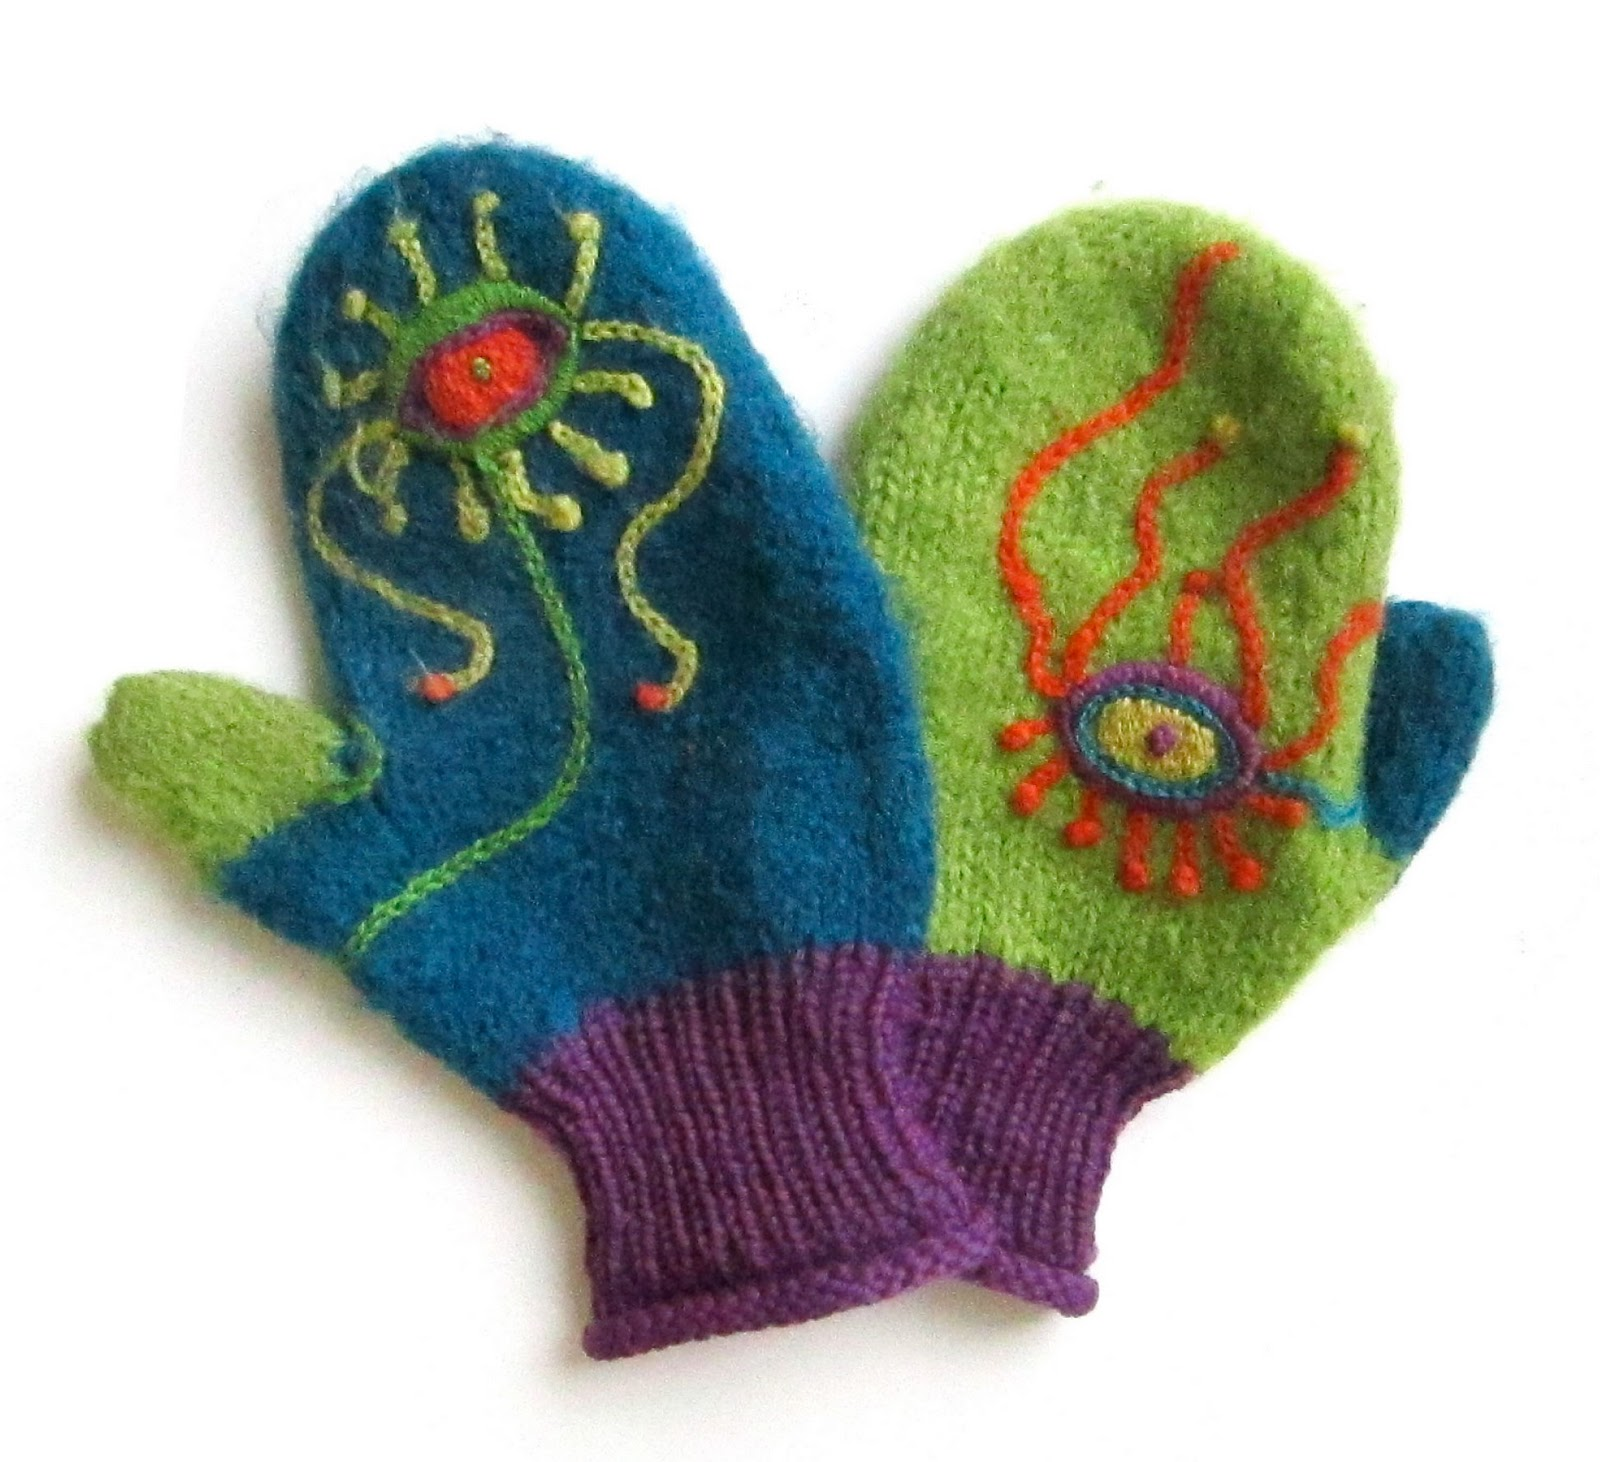 TECHknitting: A felting primer for hand knits (wet felting)